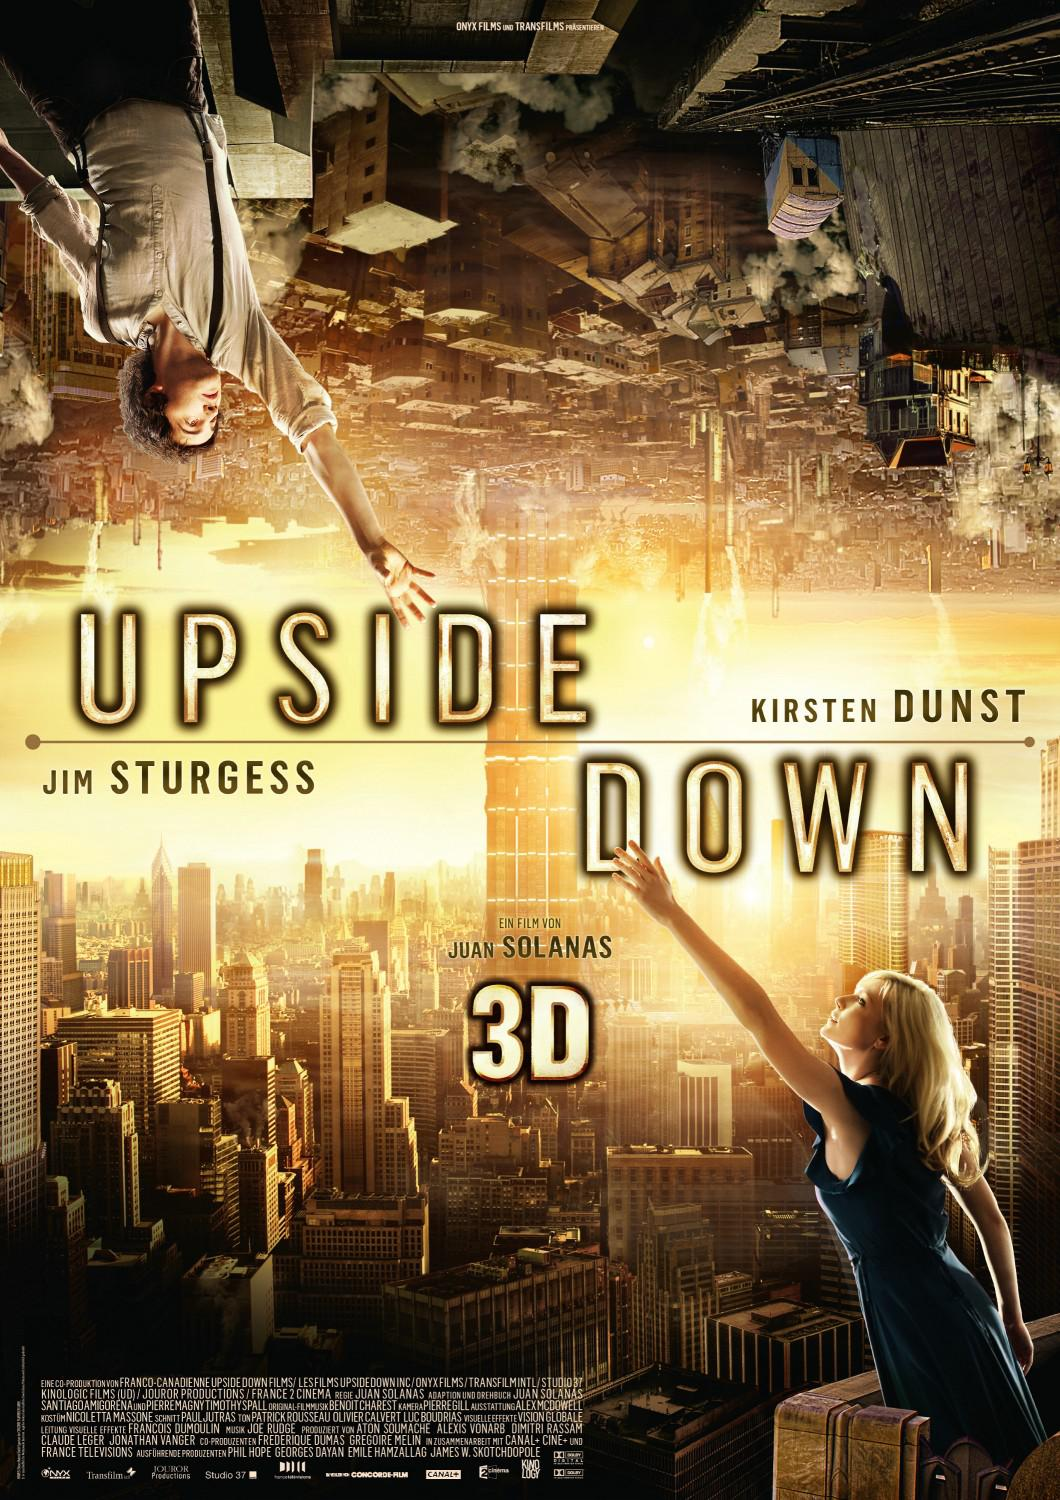 Upside Down - Kirsten Dunst - Jim Sturgess - two worlds one future - poster